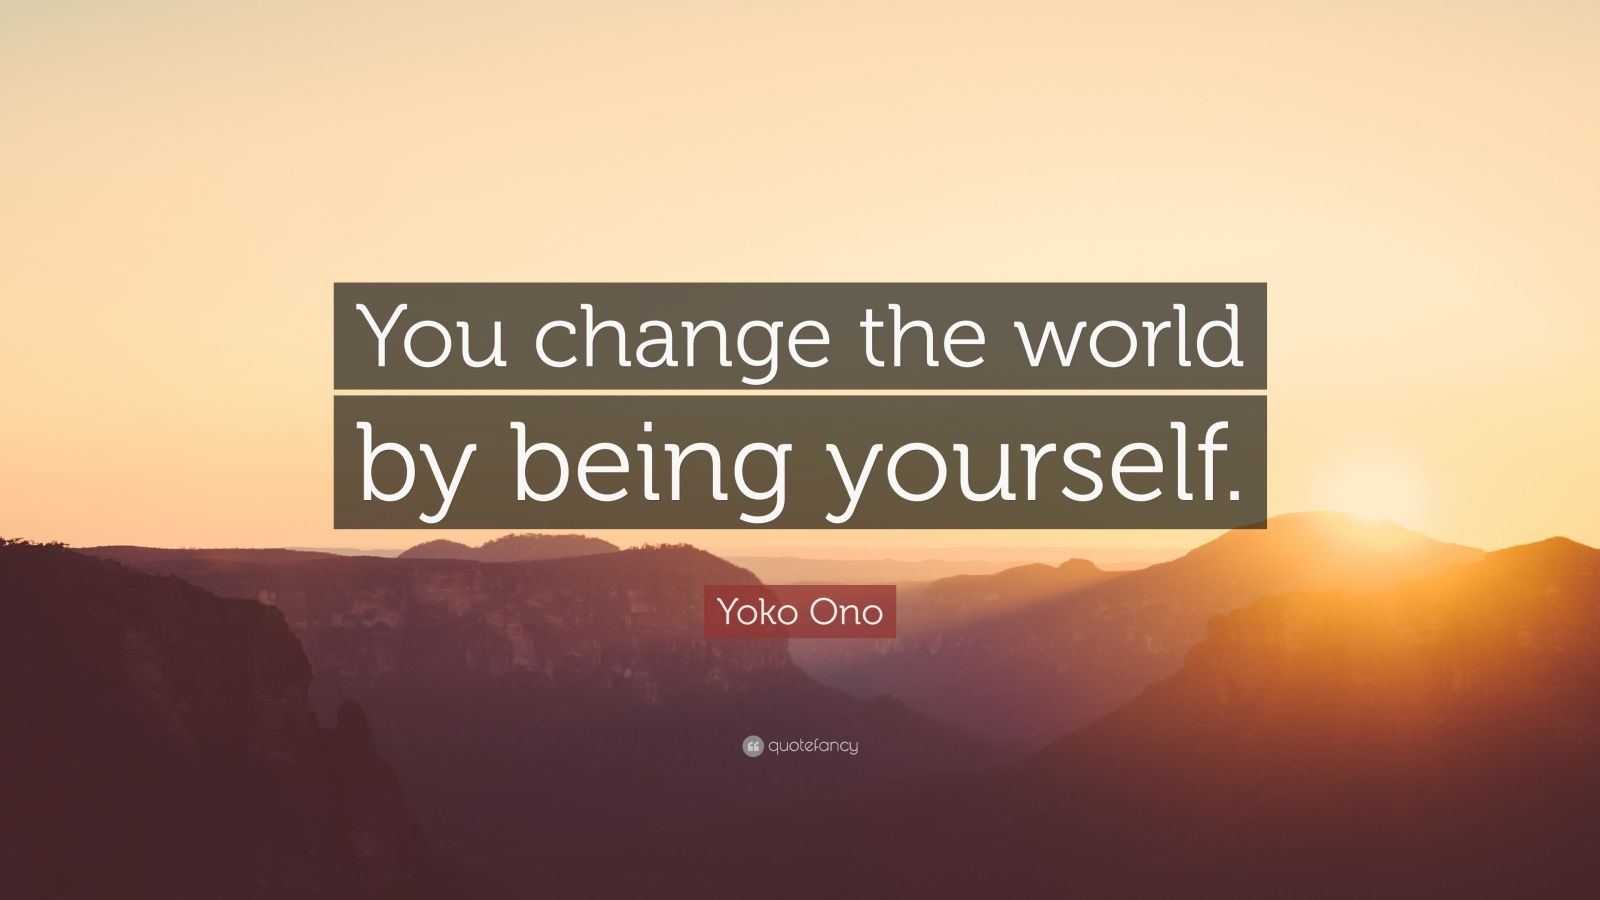 Beautiful Smile Quotes Wallpapers Yoko Ono Quote You Change The World By Being Yourself